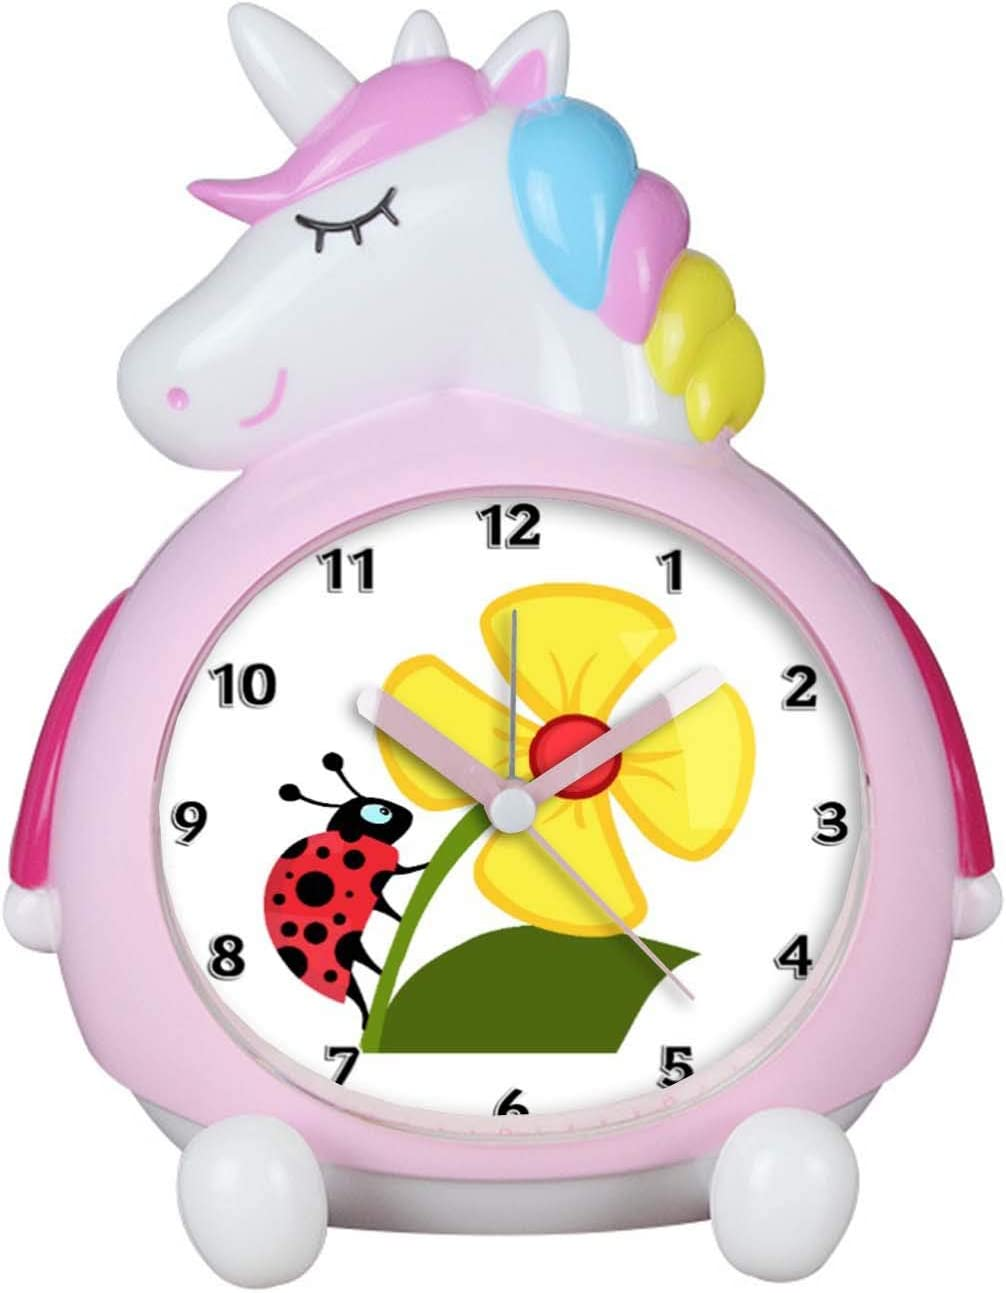 Kxdn Roblox Alarm Clock Colorful Mood Led Alarm Clock Snooze Night Amazon Com Djsnz12 Unicorn Alarm Clock For Girls Wake Up Night With Loud Music Alarm 083 Ladybug Flower Clcok Bedroom Decoration Home Kitchen